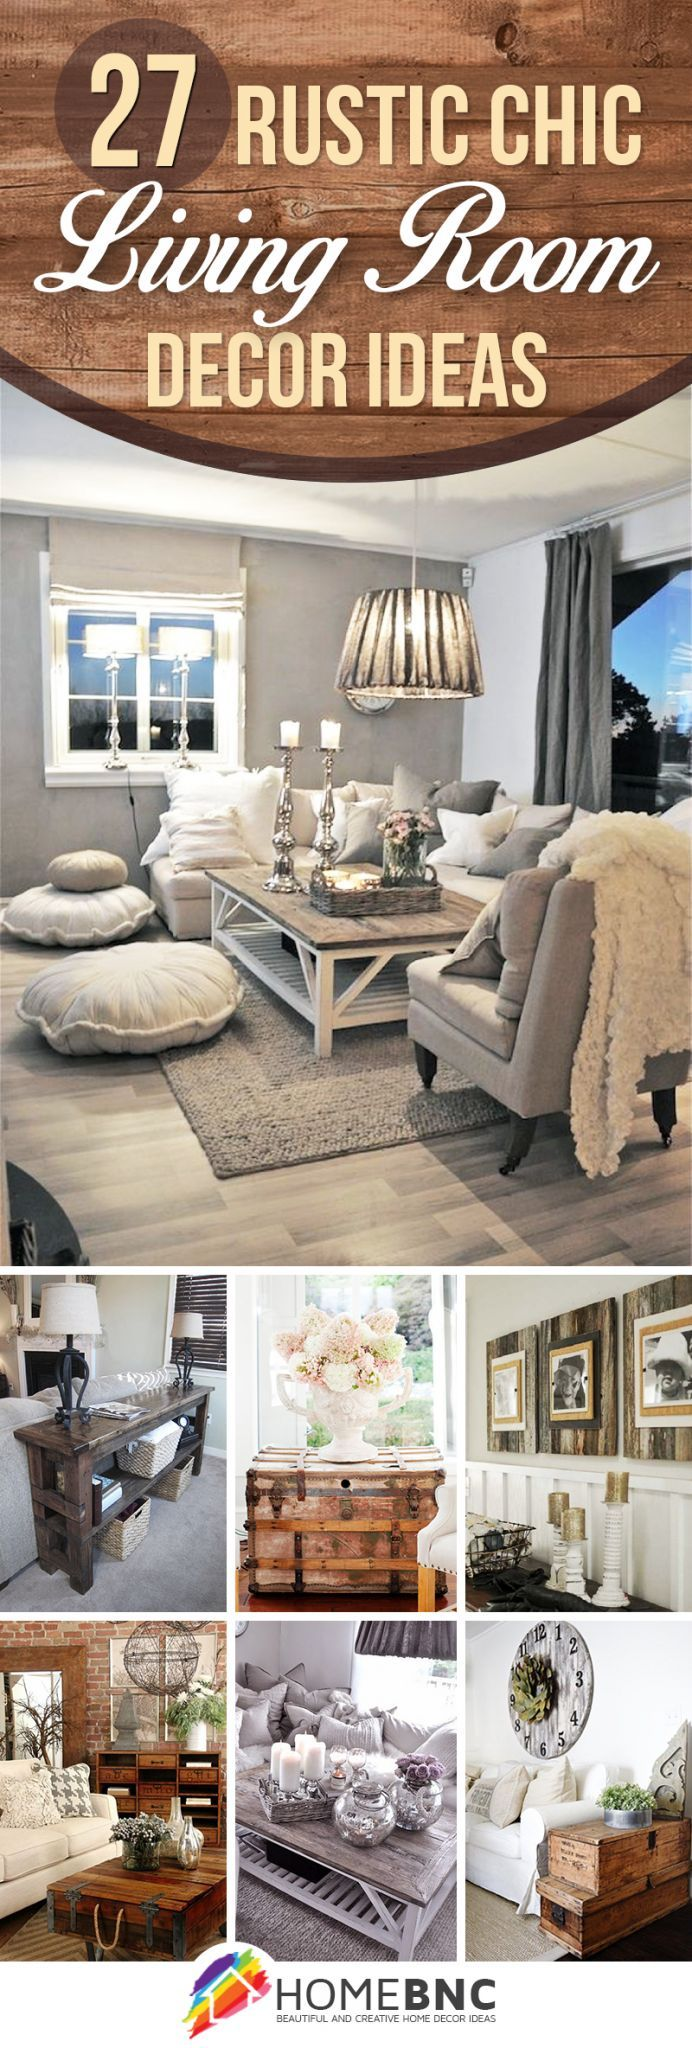 Best 25+ Living Room Decorations Ideas On Pinterest | Frames Ideas, Above  The Couch And Rustic Mantle  Living Room Decor Ideas